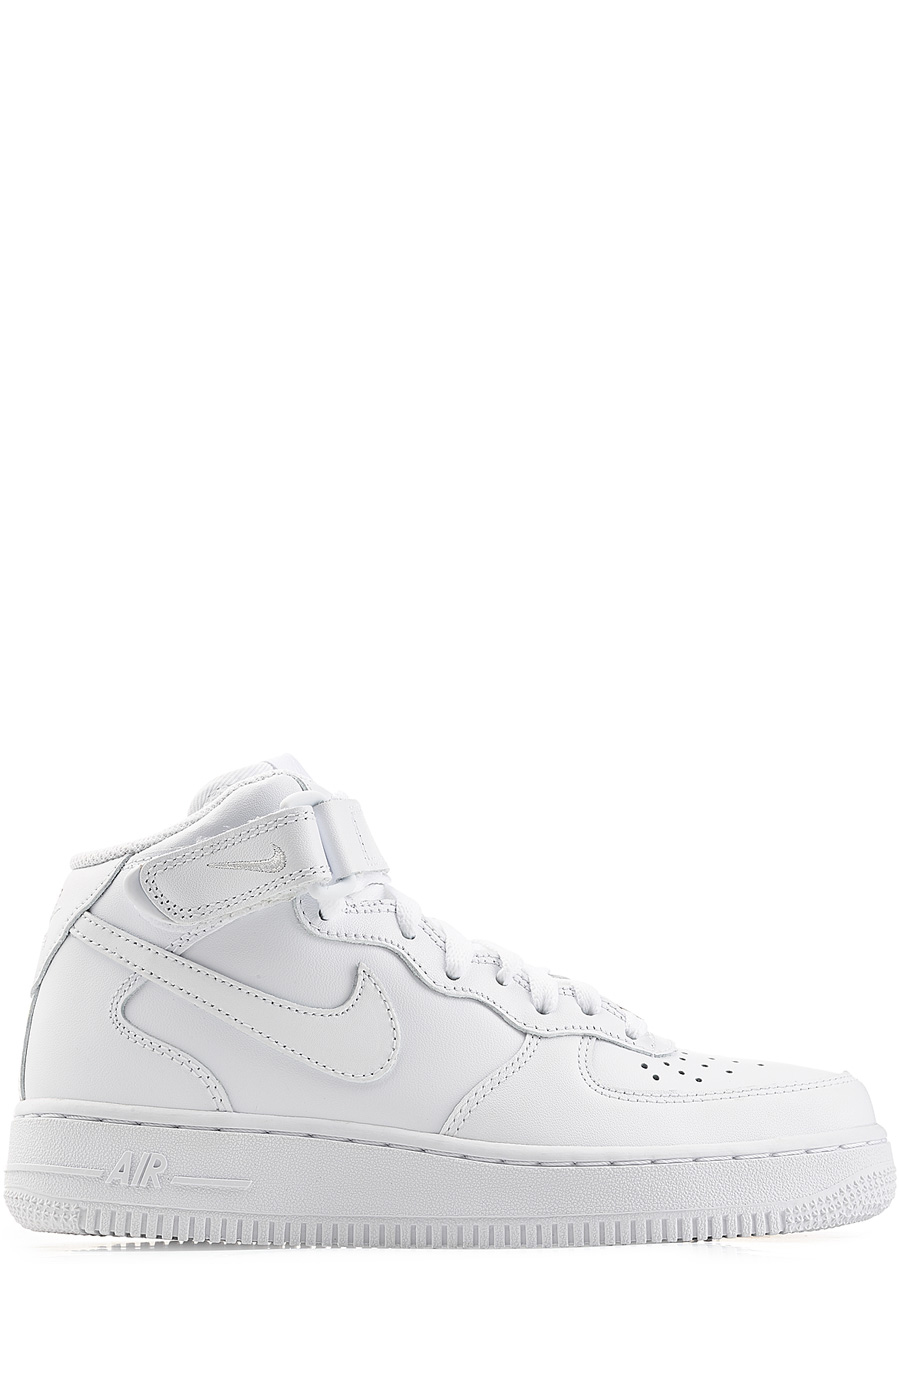 Nike Airforce 1 Suede High Top Sneakers In White